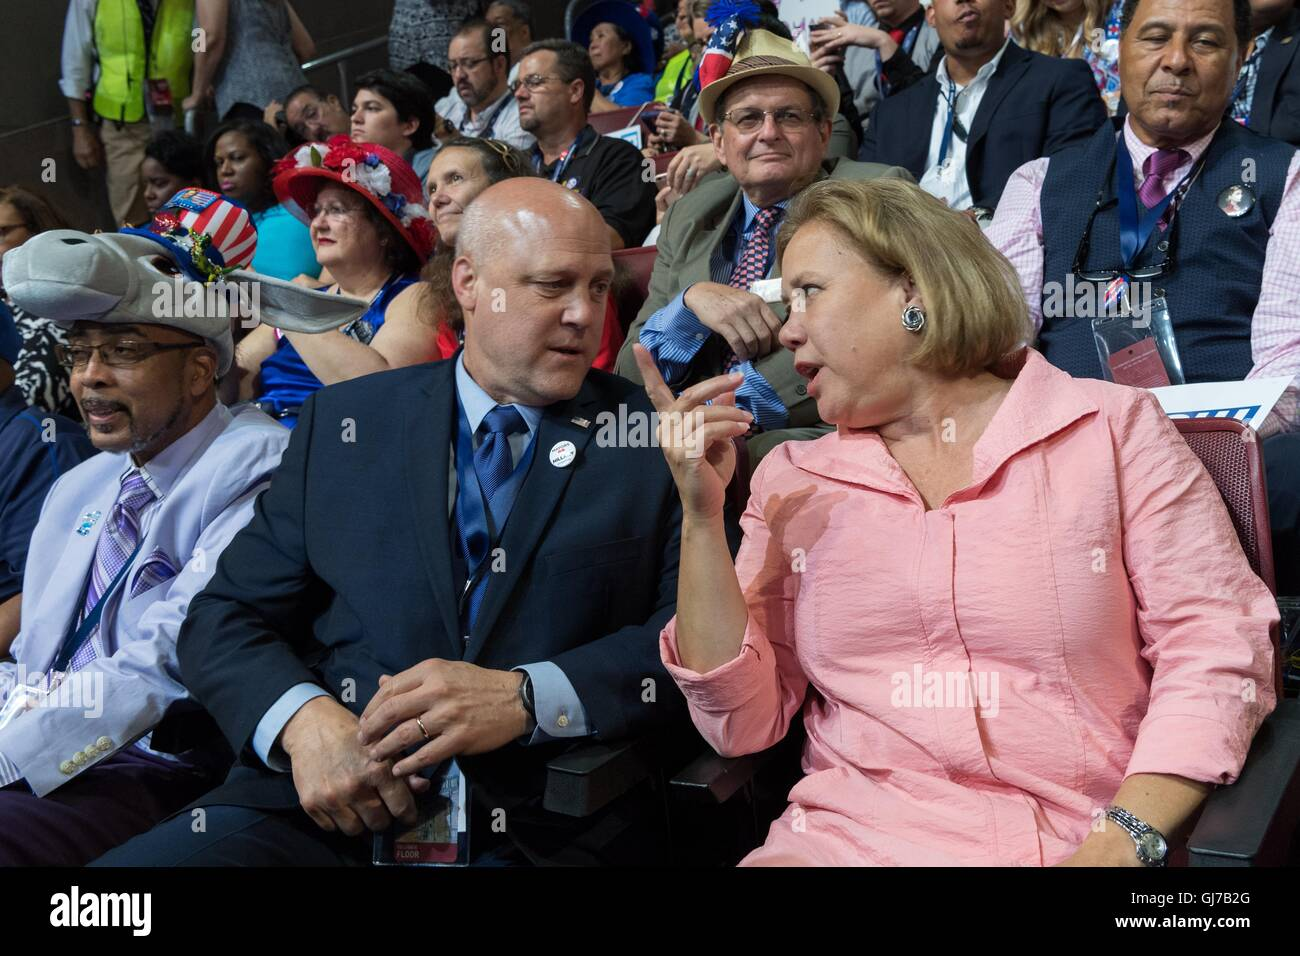 Senator Mary Landrieu of Louisiana sits with her brother New Orleans Mayor Mitch Landrieu during the 2nd day of Stock Photo